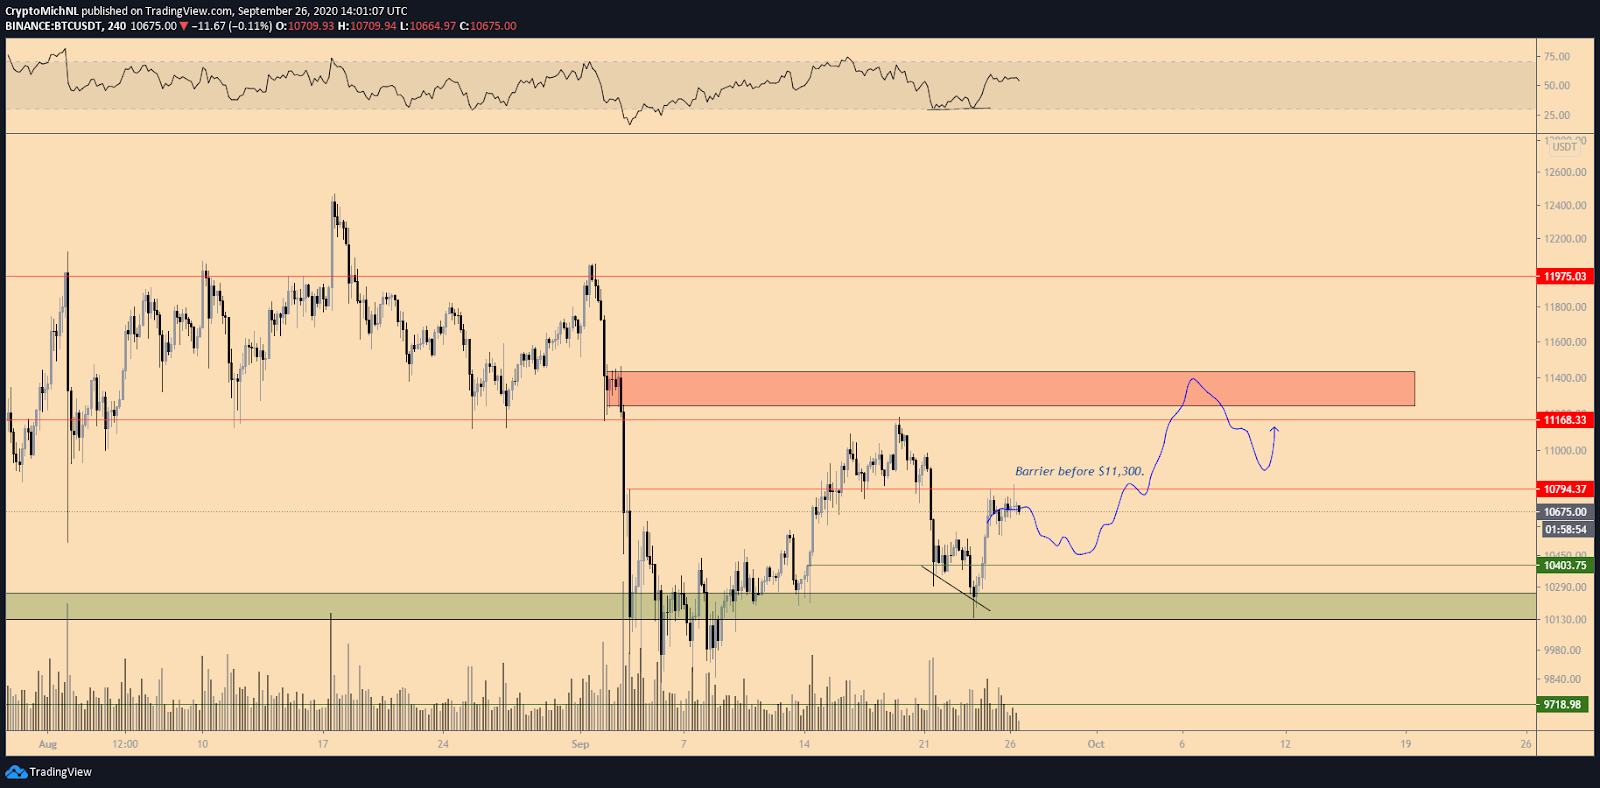 BTC/USD 4-hour chart bullish scenario. Source: TradingView